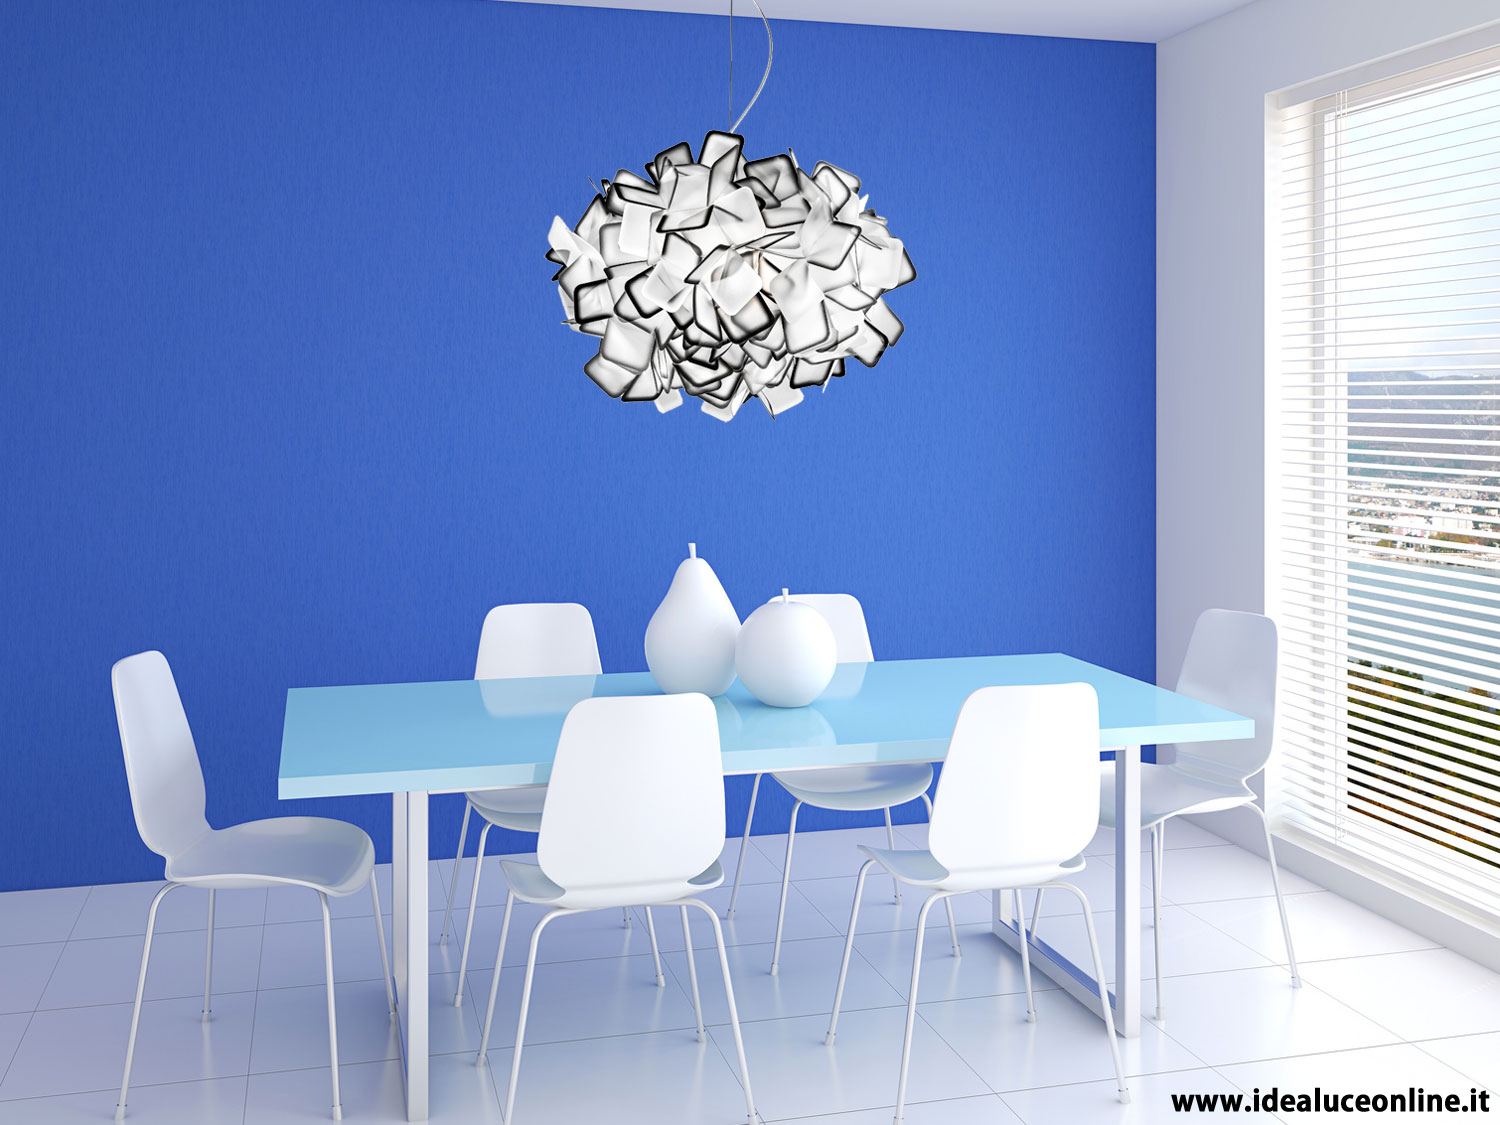 Casa immobiliare accessori lampadari per casa for Accessori lampadari